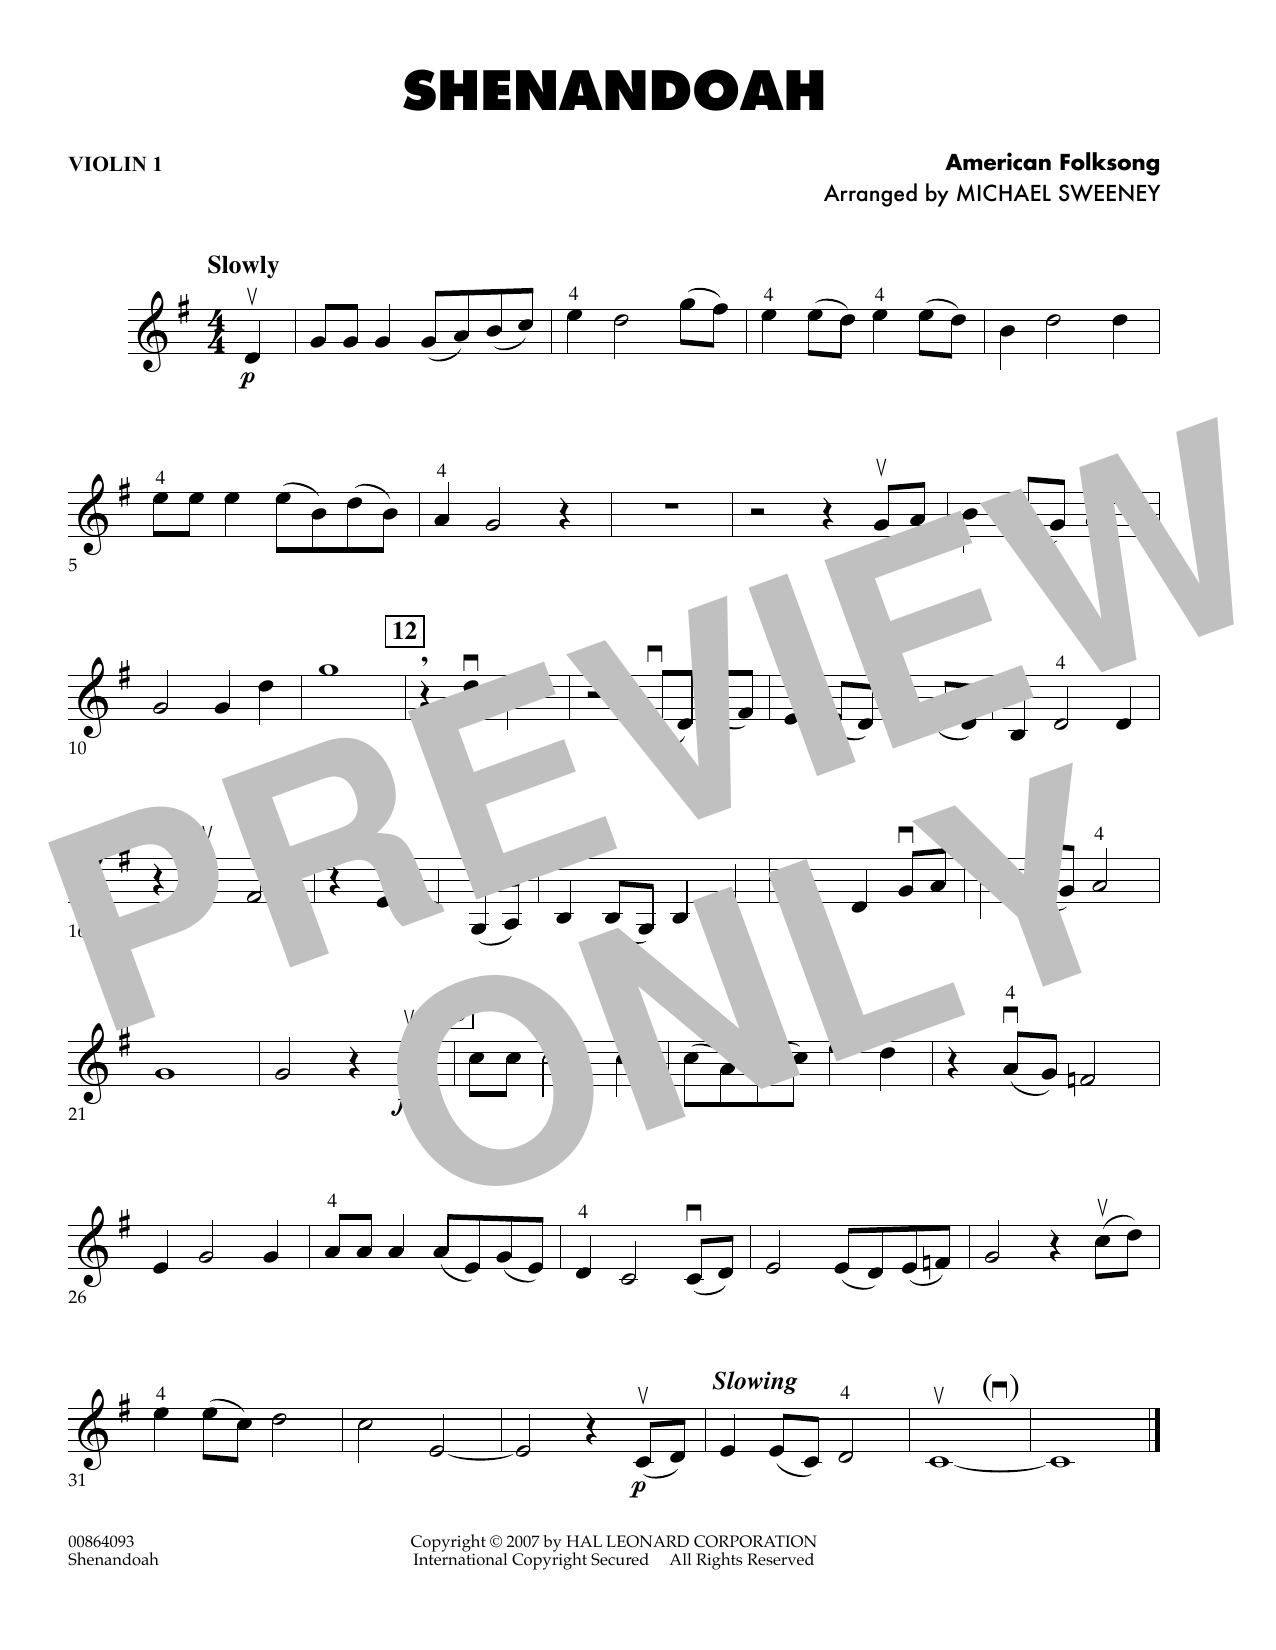 Michael Sweeney Shenandoah - Violin 1 sheet music preview music notes and score for Orchestra including 1 page(s)